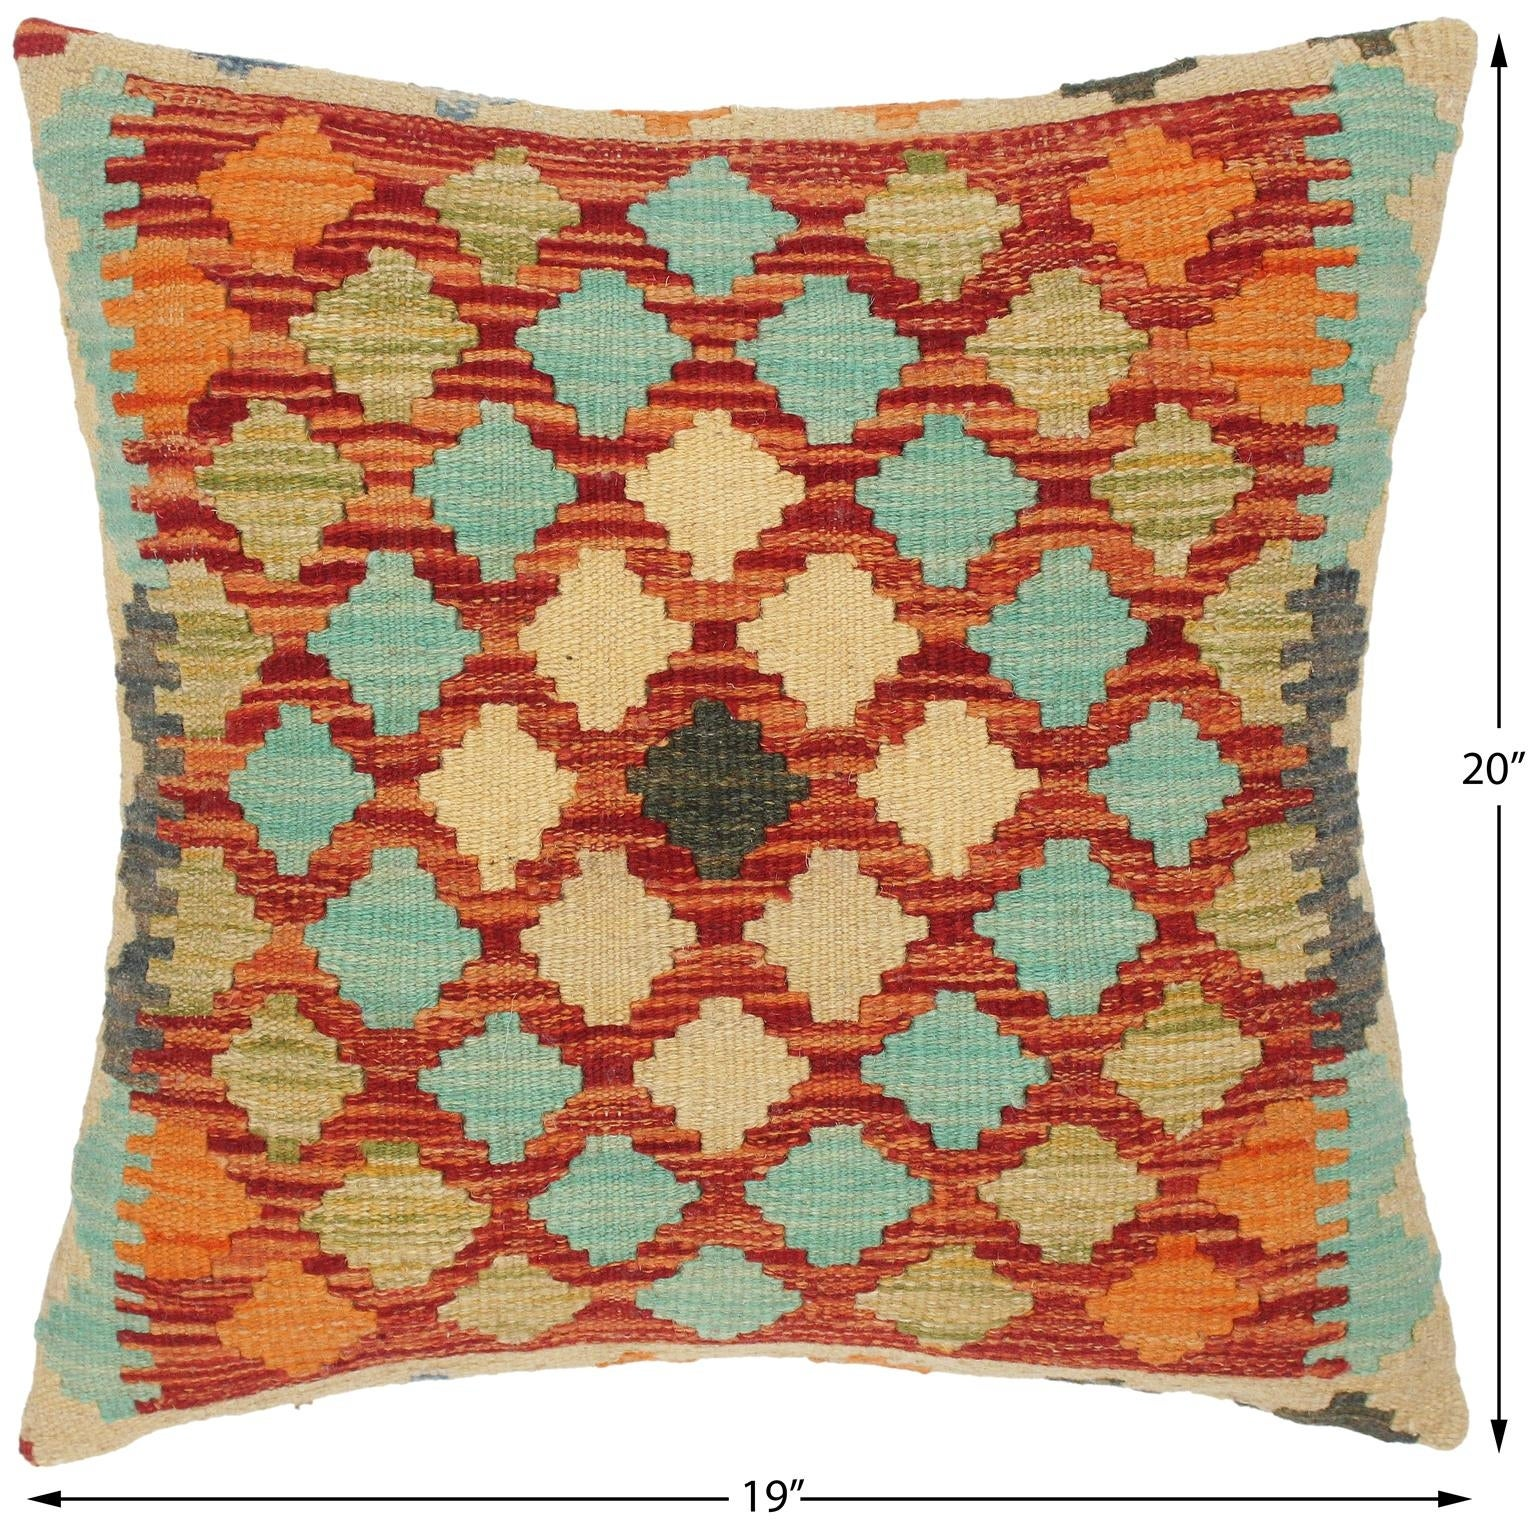 FREE SHIPPING ---- Hand Woven Highly Decorative Vintage Kilim Pillow Cushion Cover Pillow Cover Toss Pillow Throw Pillow